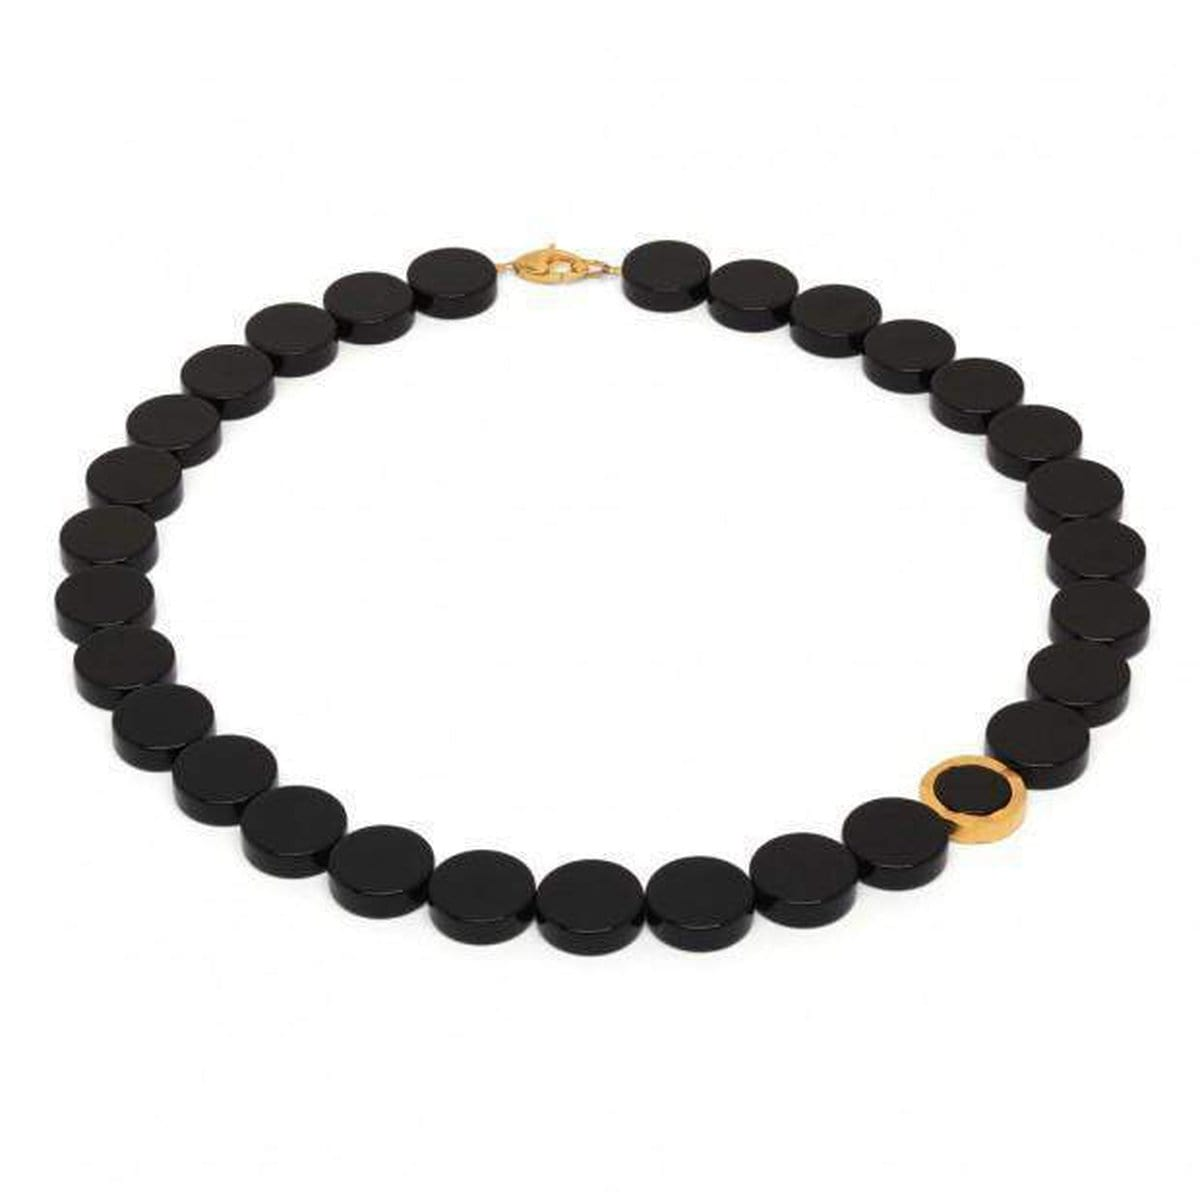 Mosuno Onyx Necklace - 81015806-Bernd Wolf-Renee Taylor Gallery